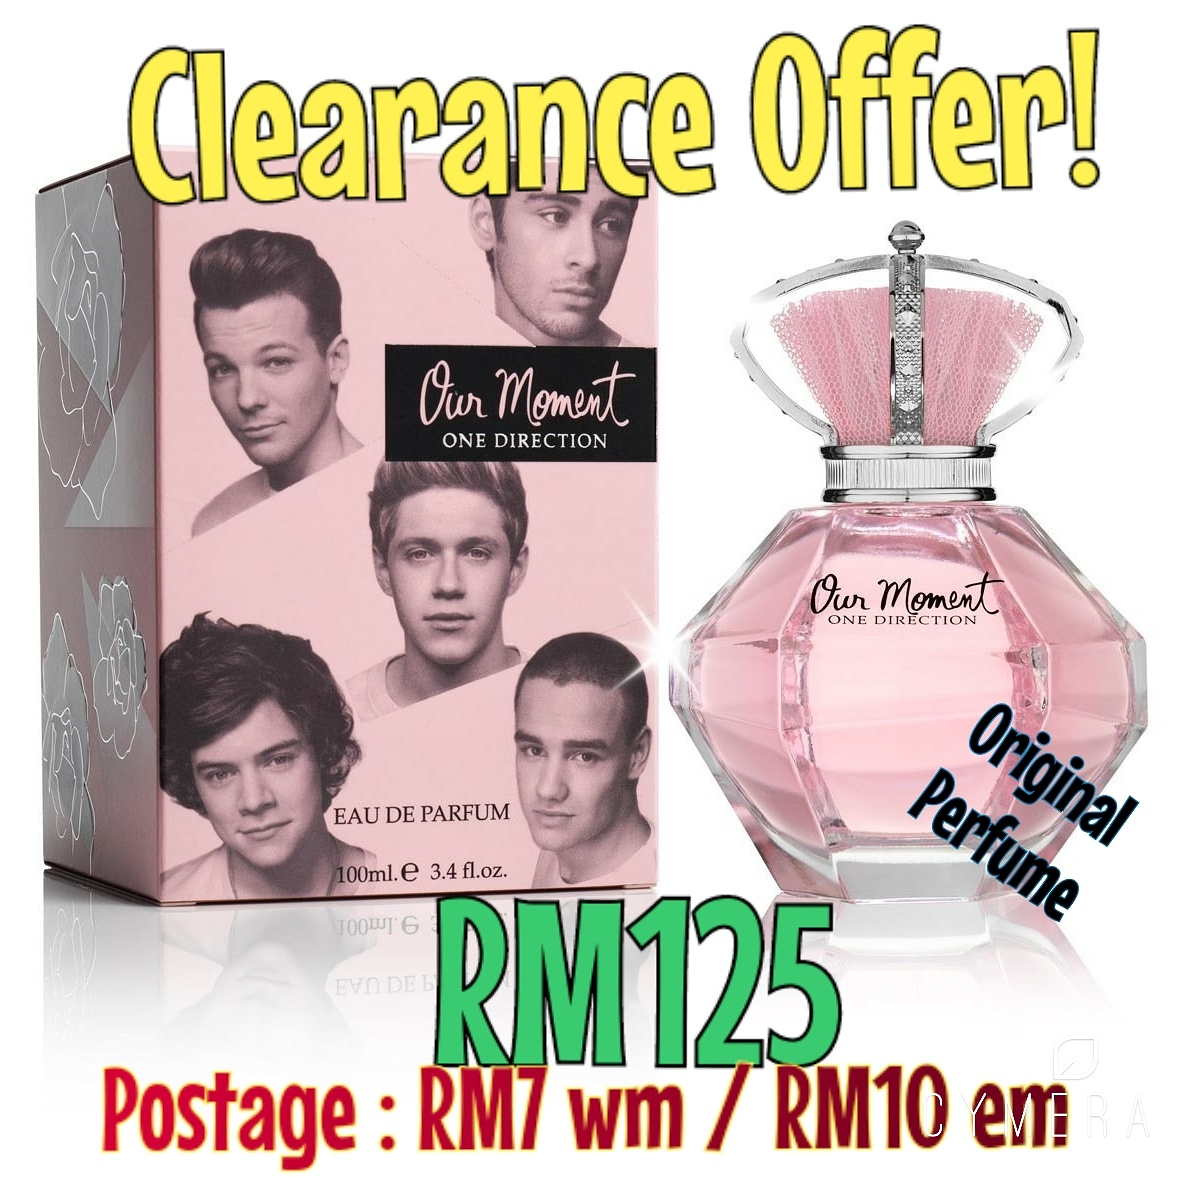 CLEARANCE SALE : RM125 ONLY EXCLUDE POSTAGE